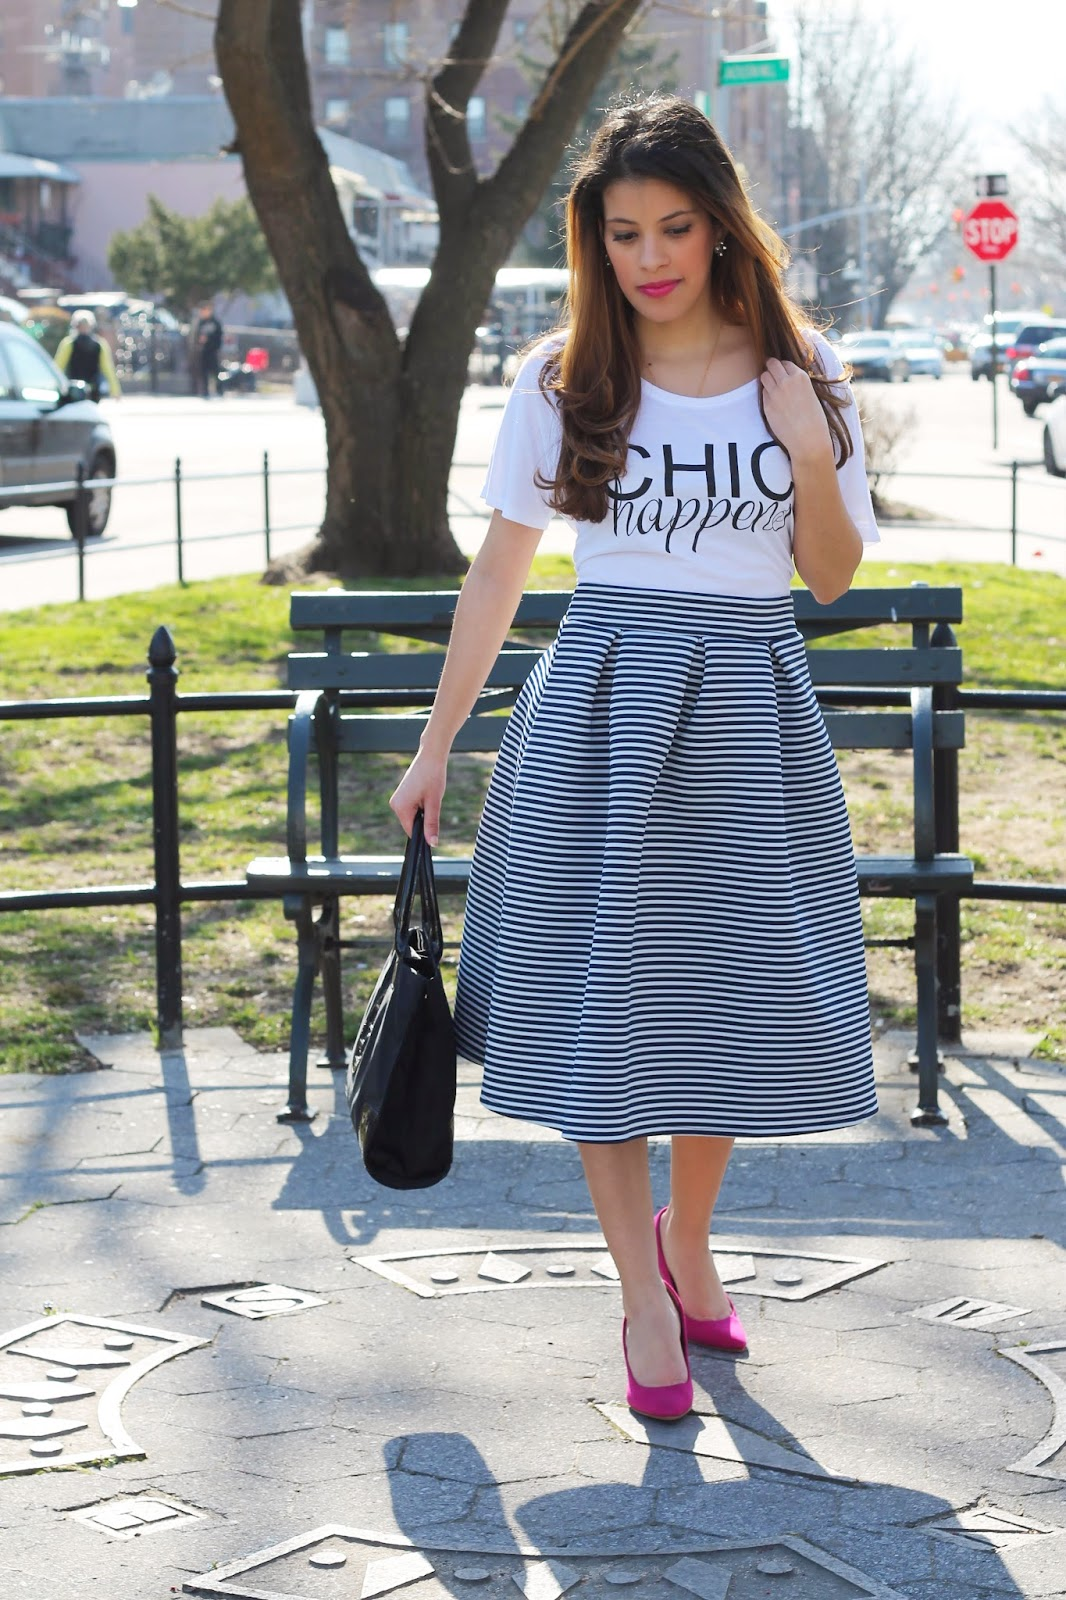 shirt club, chic, chichappens, midi skirt, skirt, tulip skirt, spring, spring fashion, chic seams, rosewood, roosewoodboutique, fuchsia, pumps, stripes, tory burch, old navy, pleated skirt, navy, white, fashion, ella nylon tote, tote, girl, girly, simple, beautiful, cool, blogger, personal style, fashion blogger, new york, baby blue